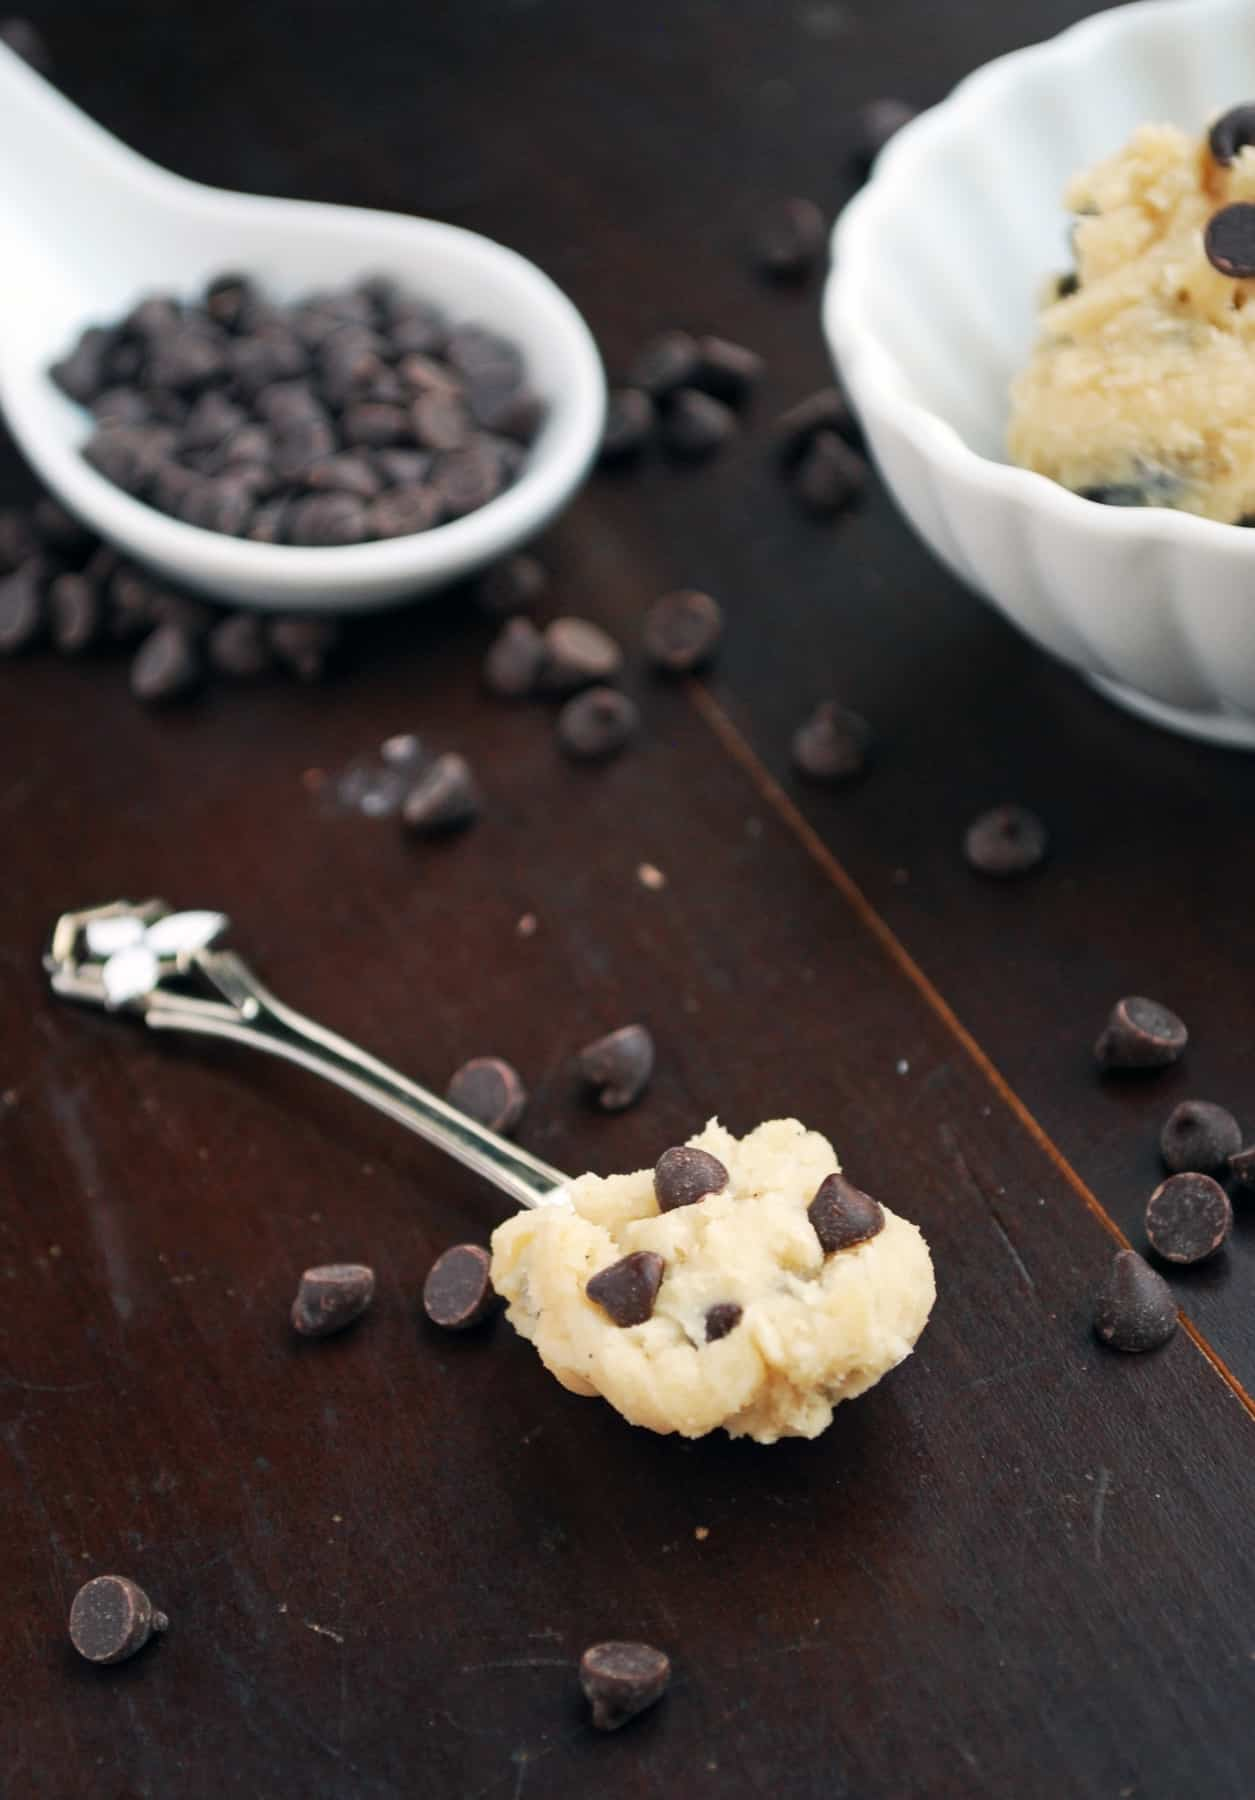 vegan cookie dough on a spoon with chocolate chips